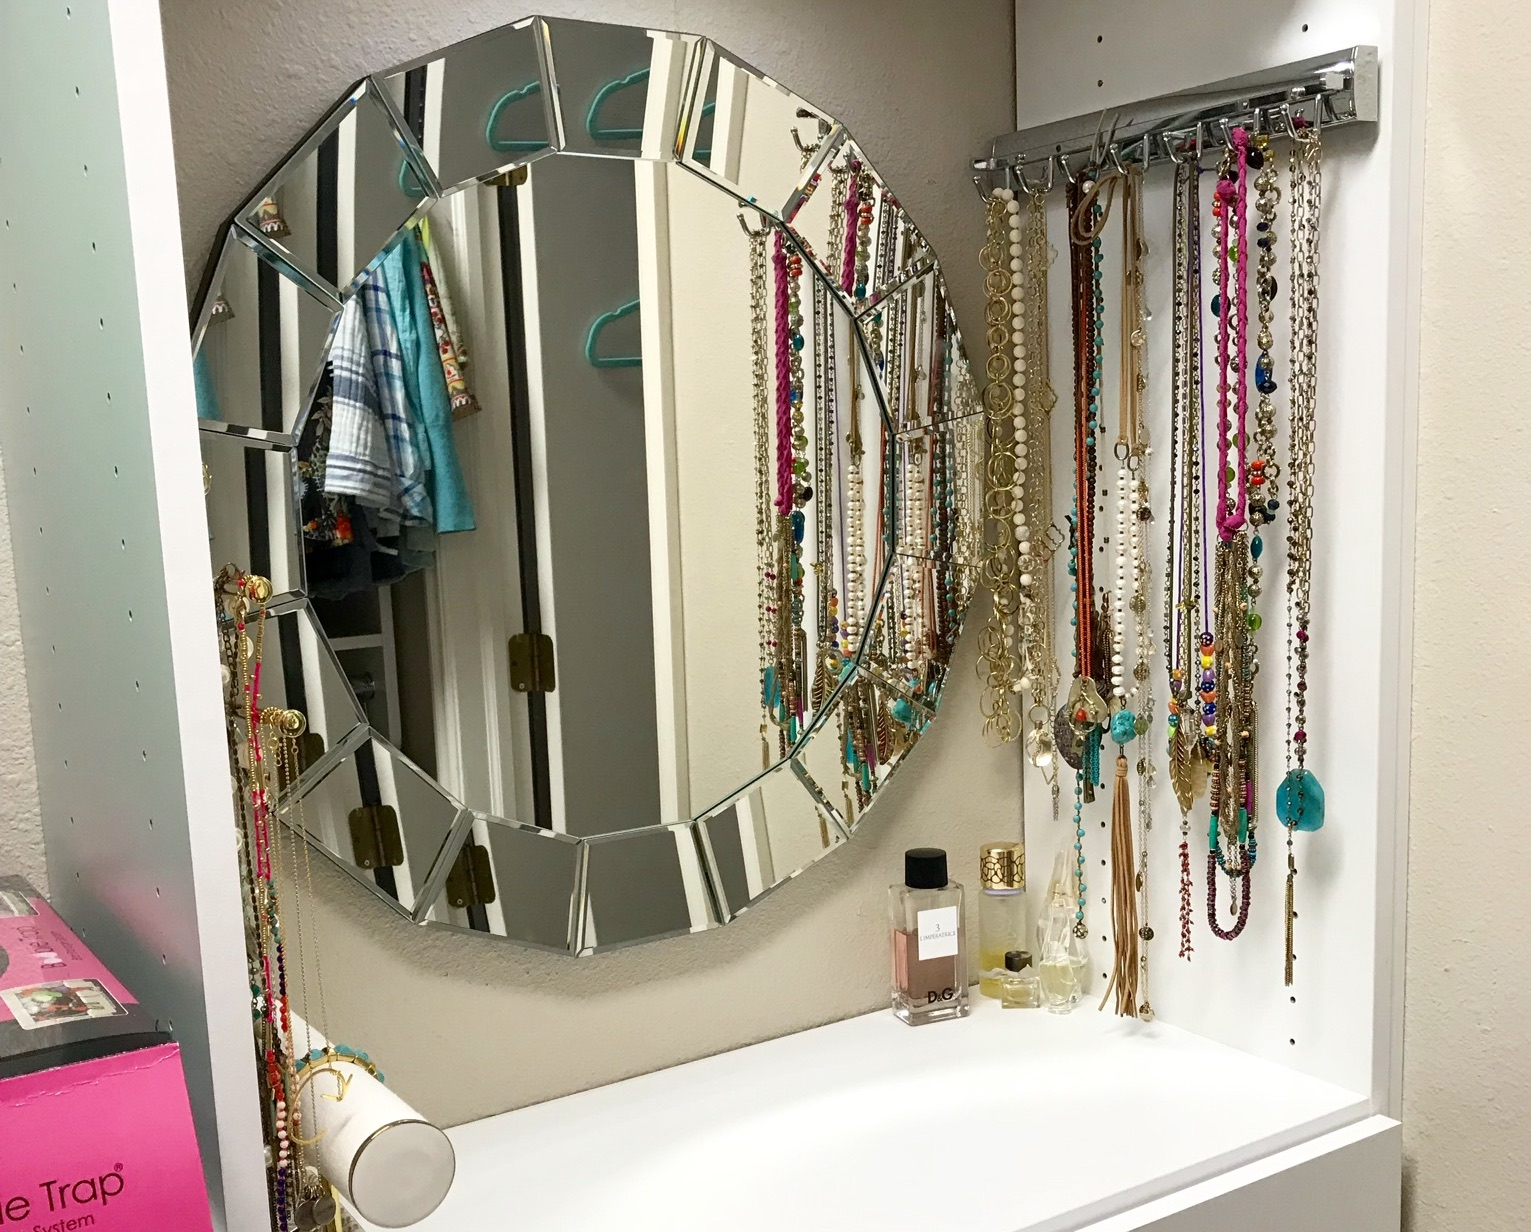 This custom closet vanity by Closets of Tulsa keeps jewelry and small accessories organized in style.  Call now  for your FREE consultation and 3-D closet design:  918.609.0214